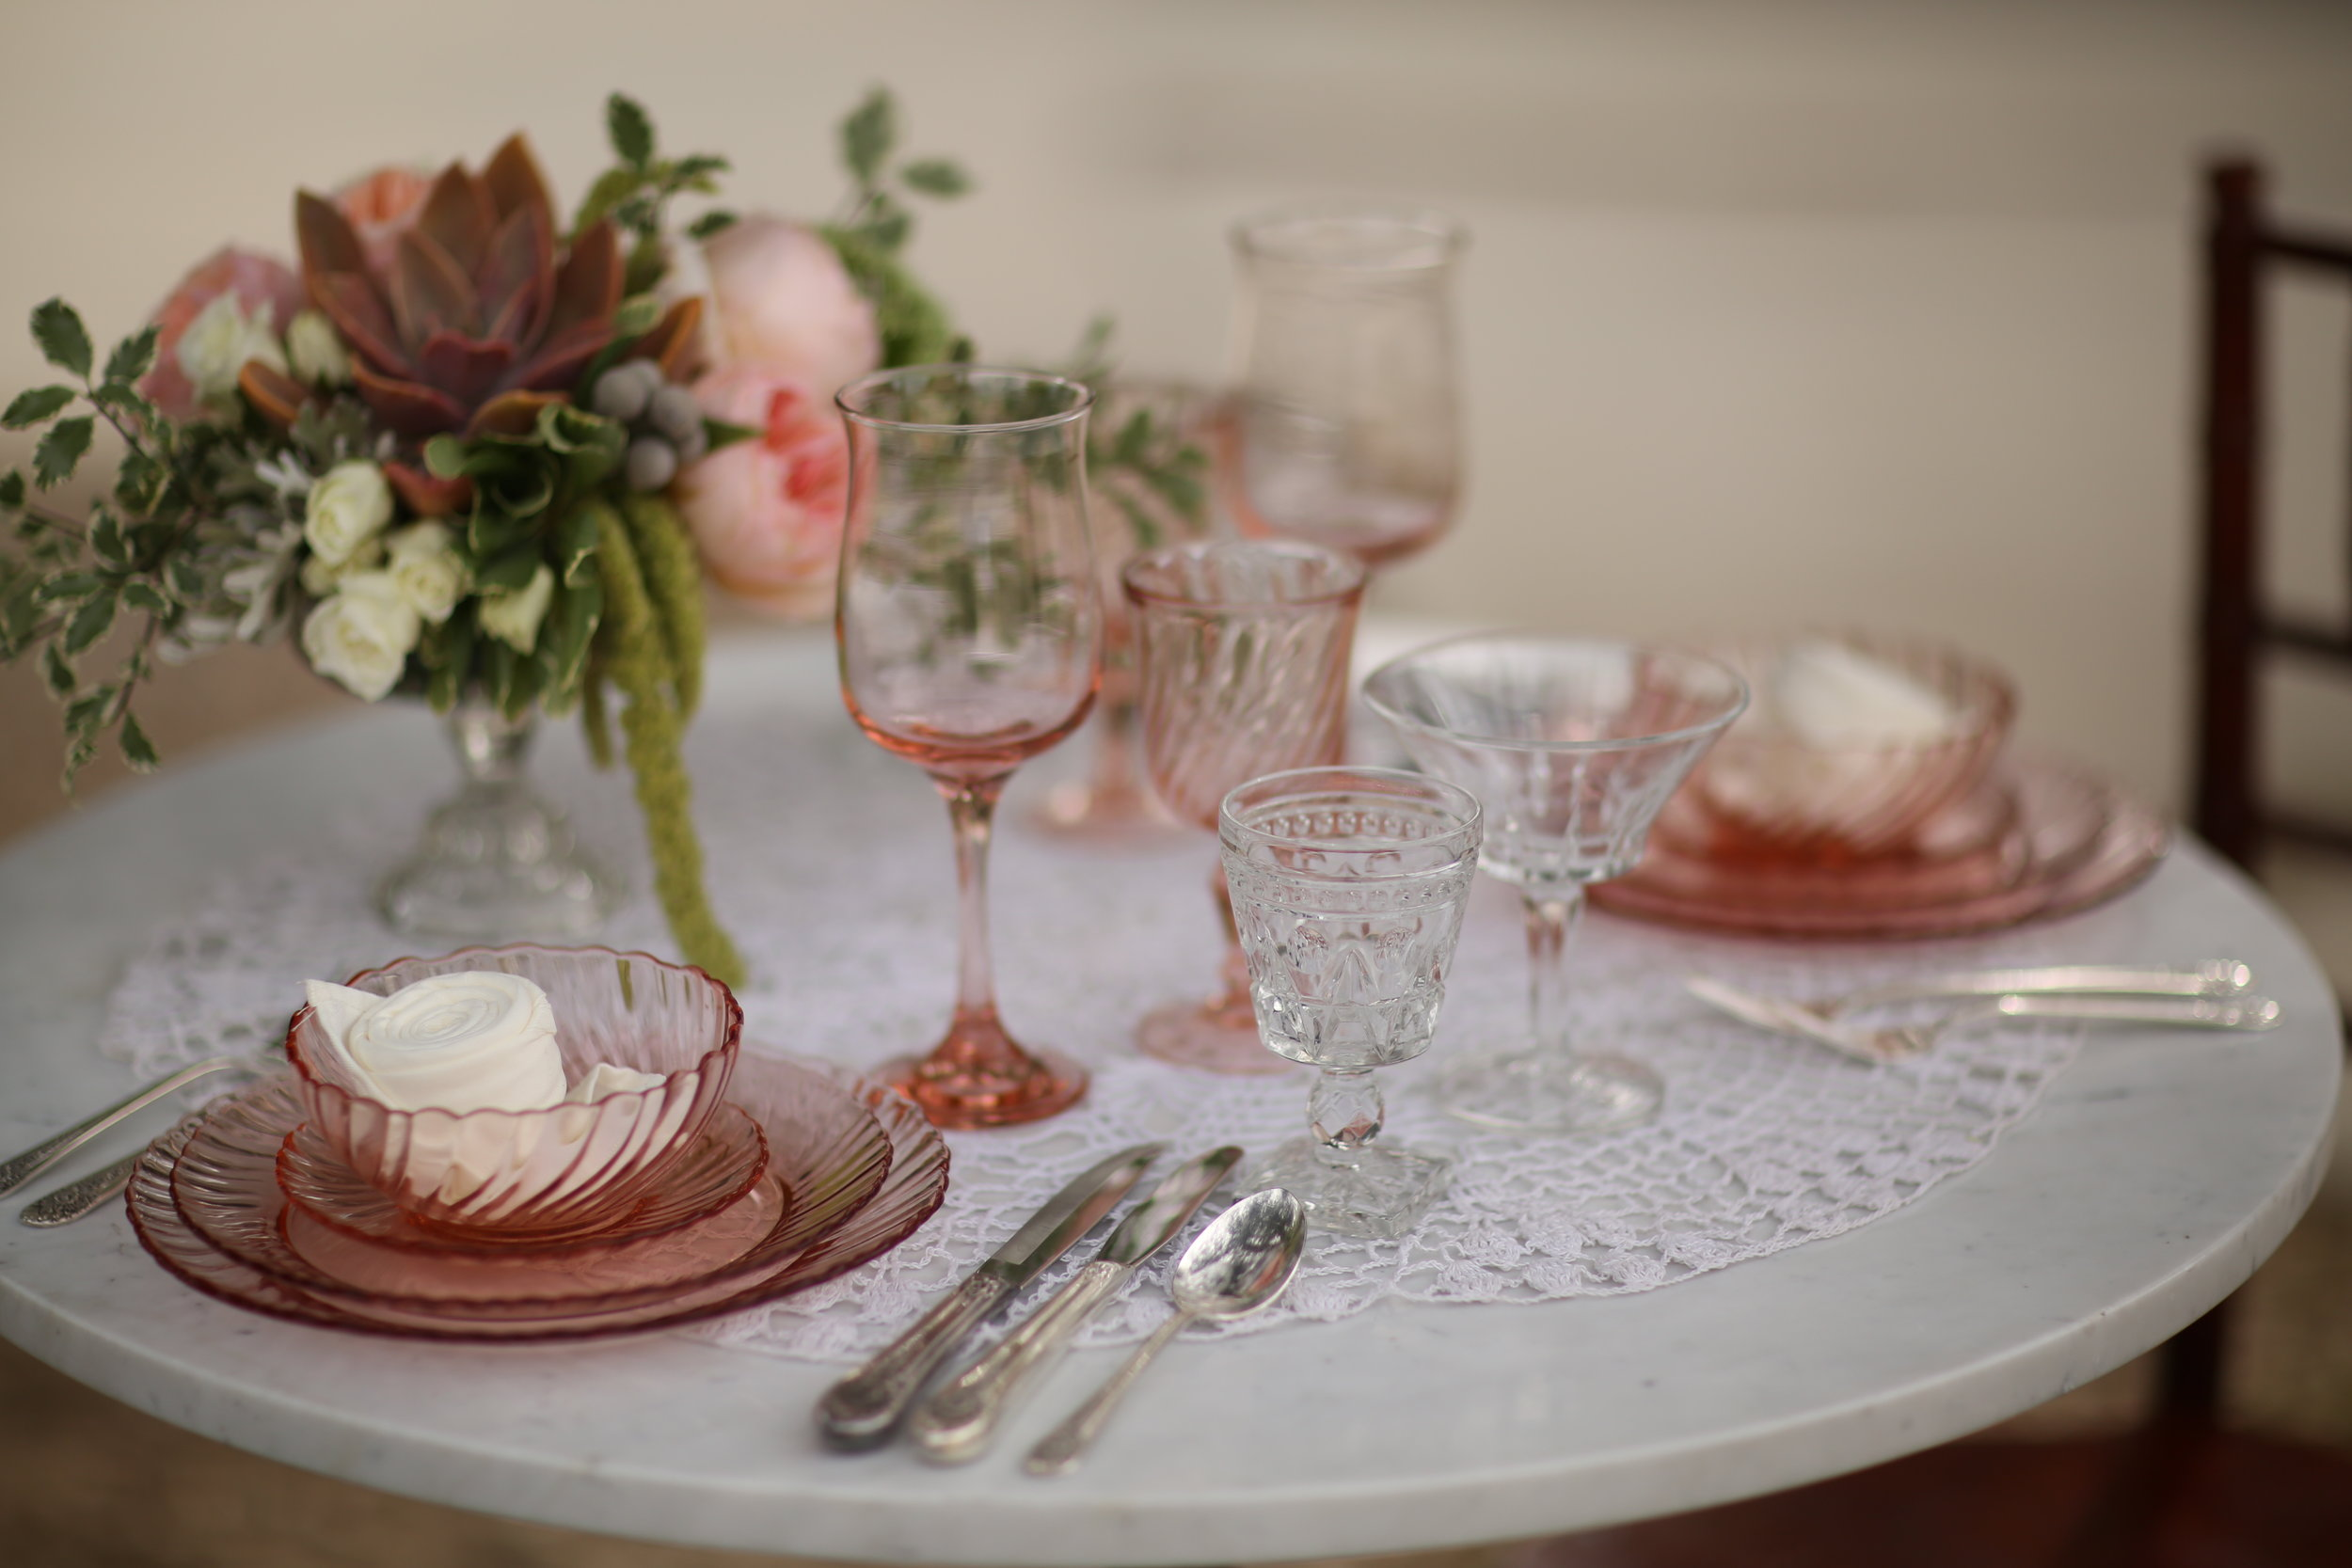 Pink Swirl vintage plates with succulent centerpiece. Vintage lace tablecloth and pink goblets. Perfect for a wedding sweetheart table. Wedding rentals in Murrieta.